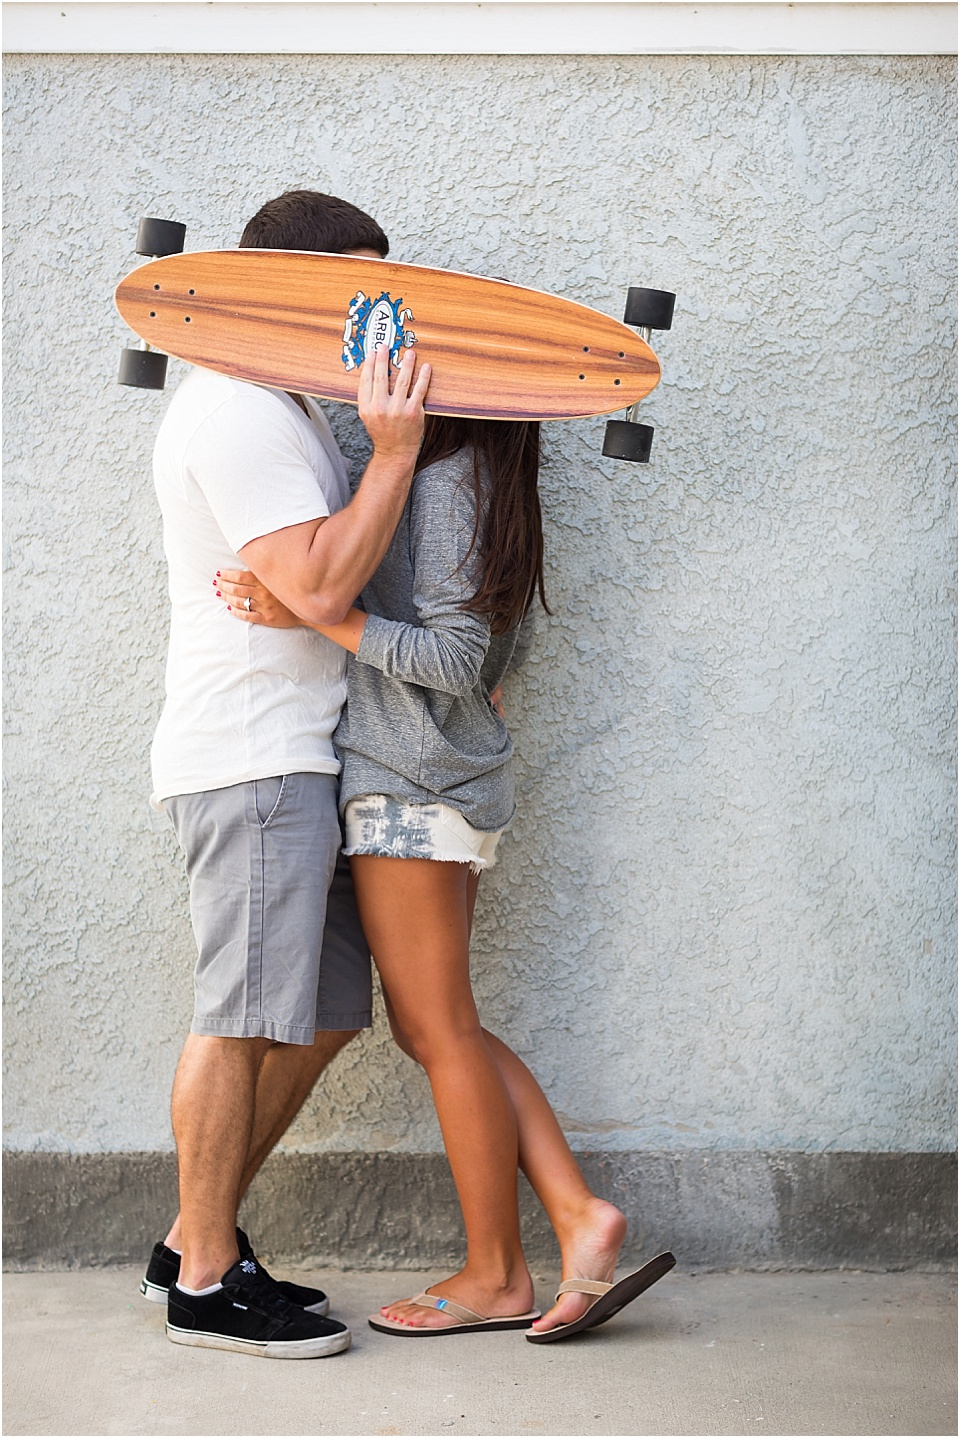 Manhattan Beach - Long boarding - Engagement Photos {Valorie Darling Photography} - 10325.jpg